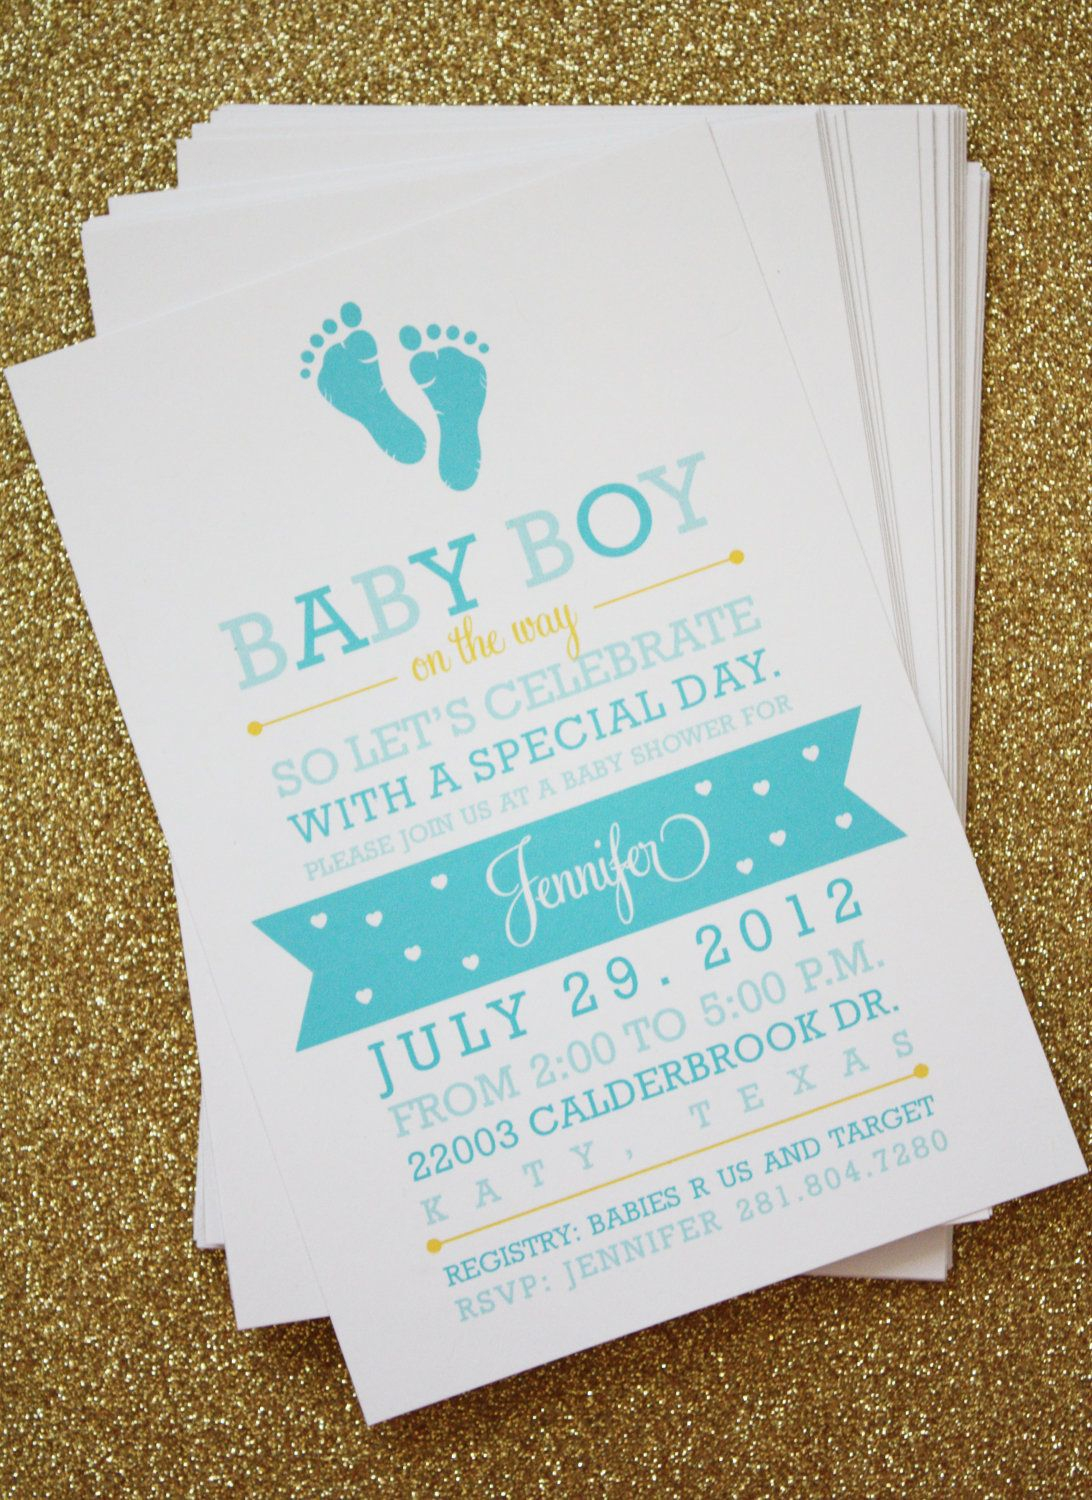 Beautiful Invitaciones Para Babyshower De Niño #ideasparababyshowerathina regarding Invitaciones Para Baby Shower De Niño